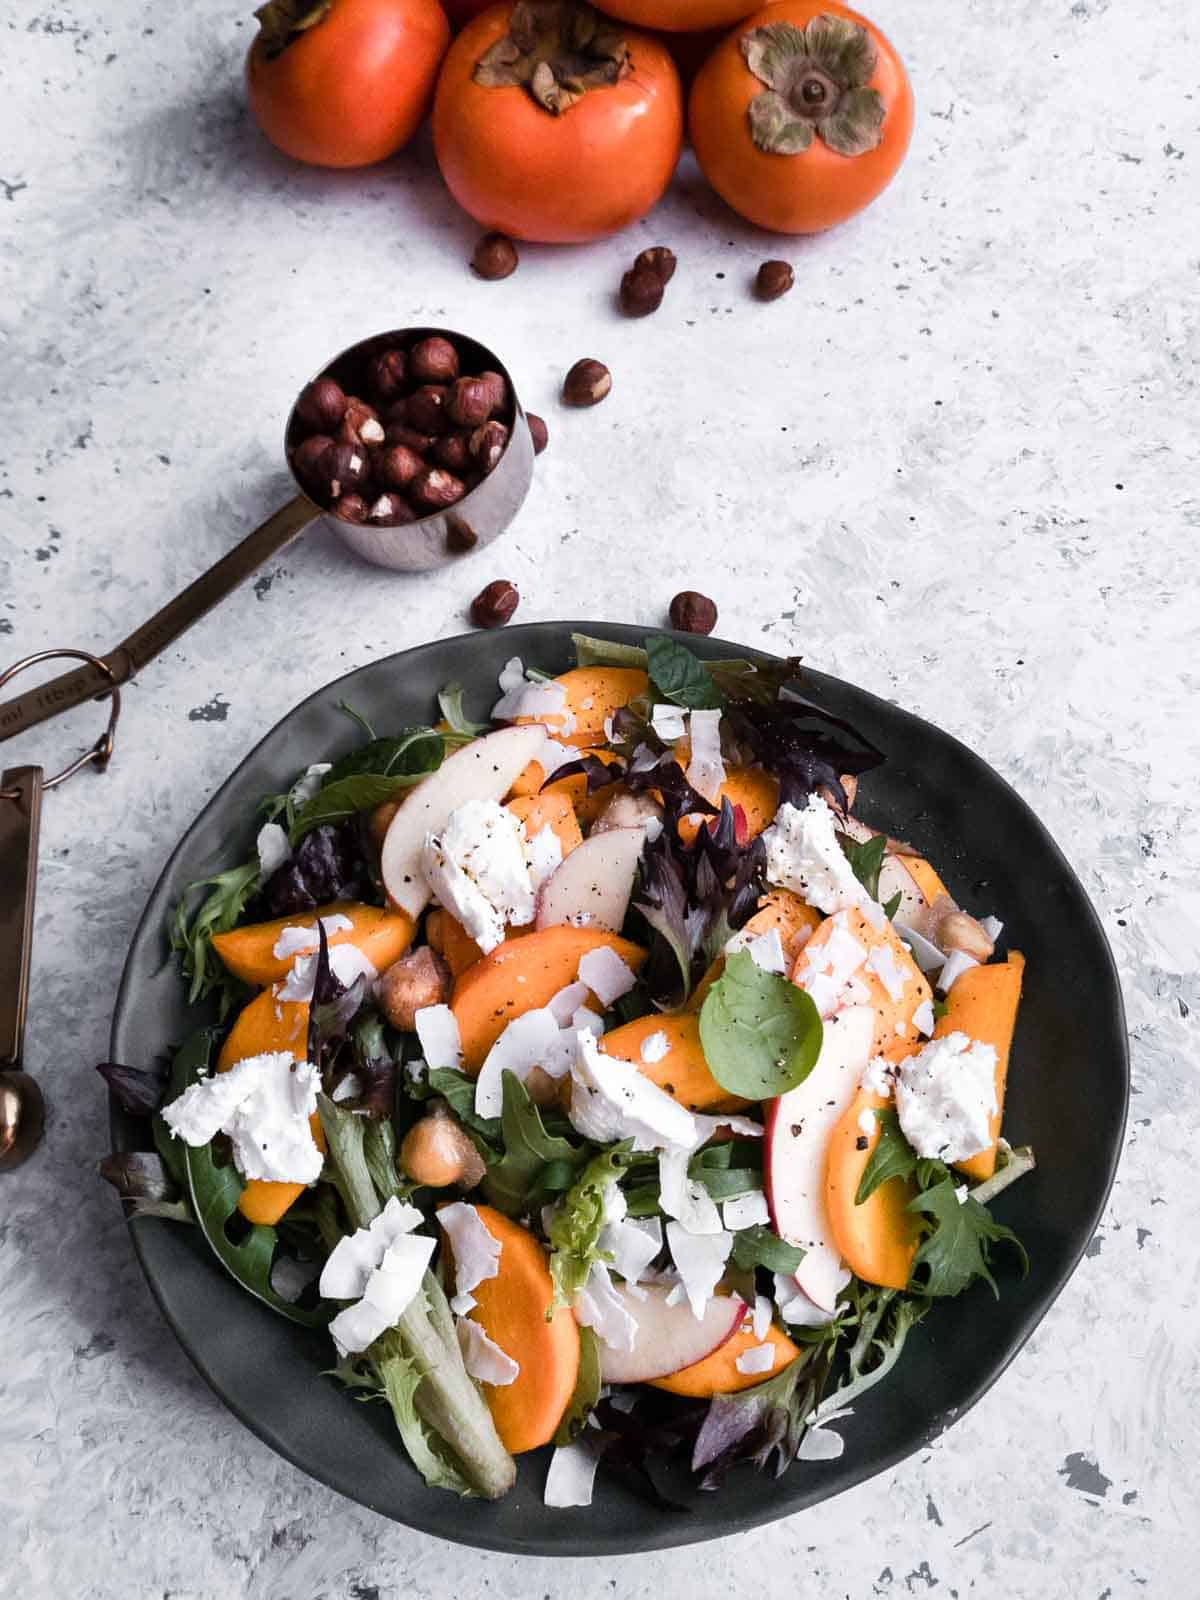 Persimmon Salad with Candied Hazelnuts